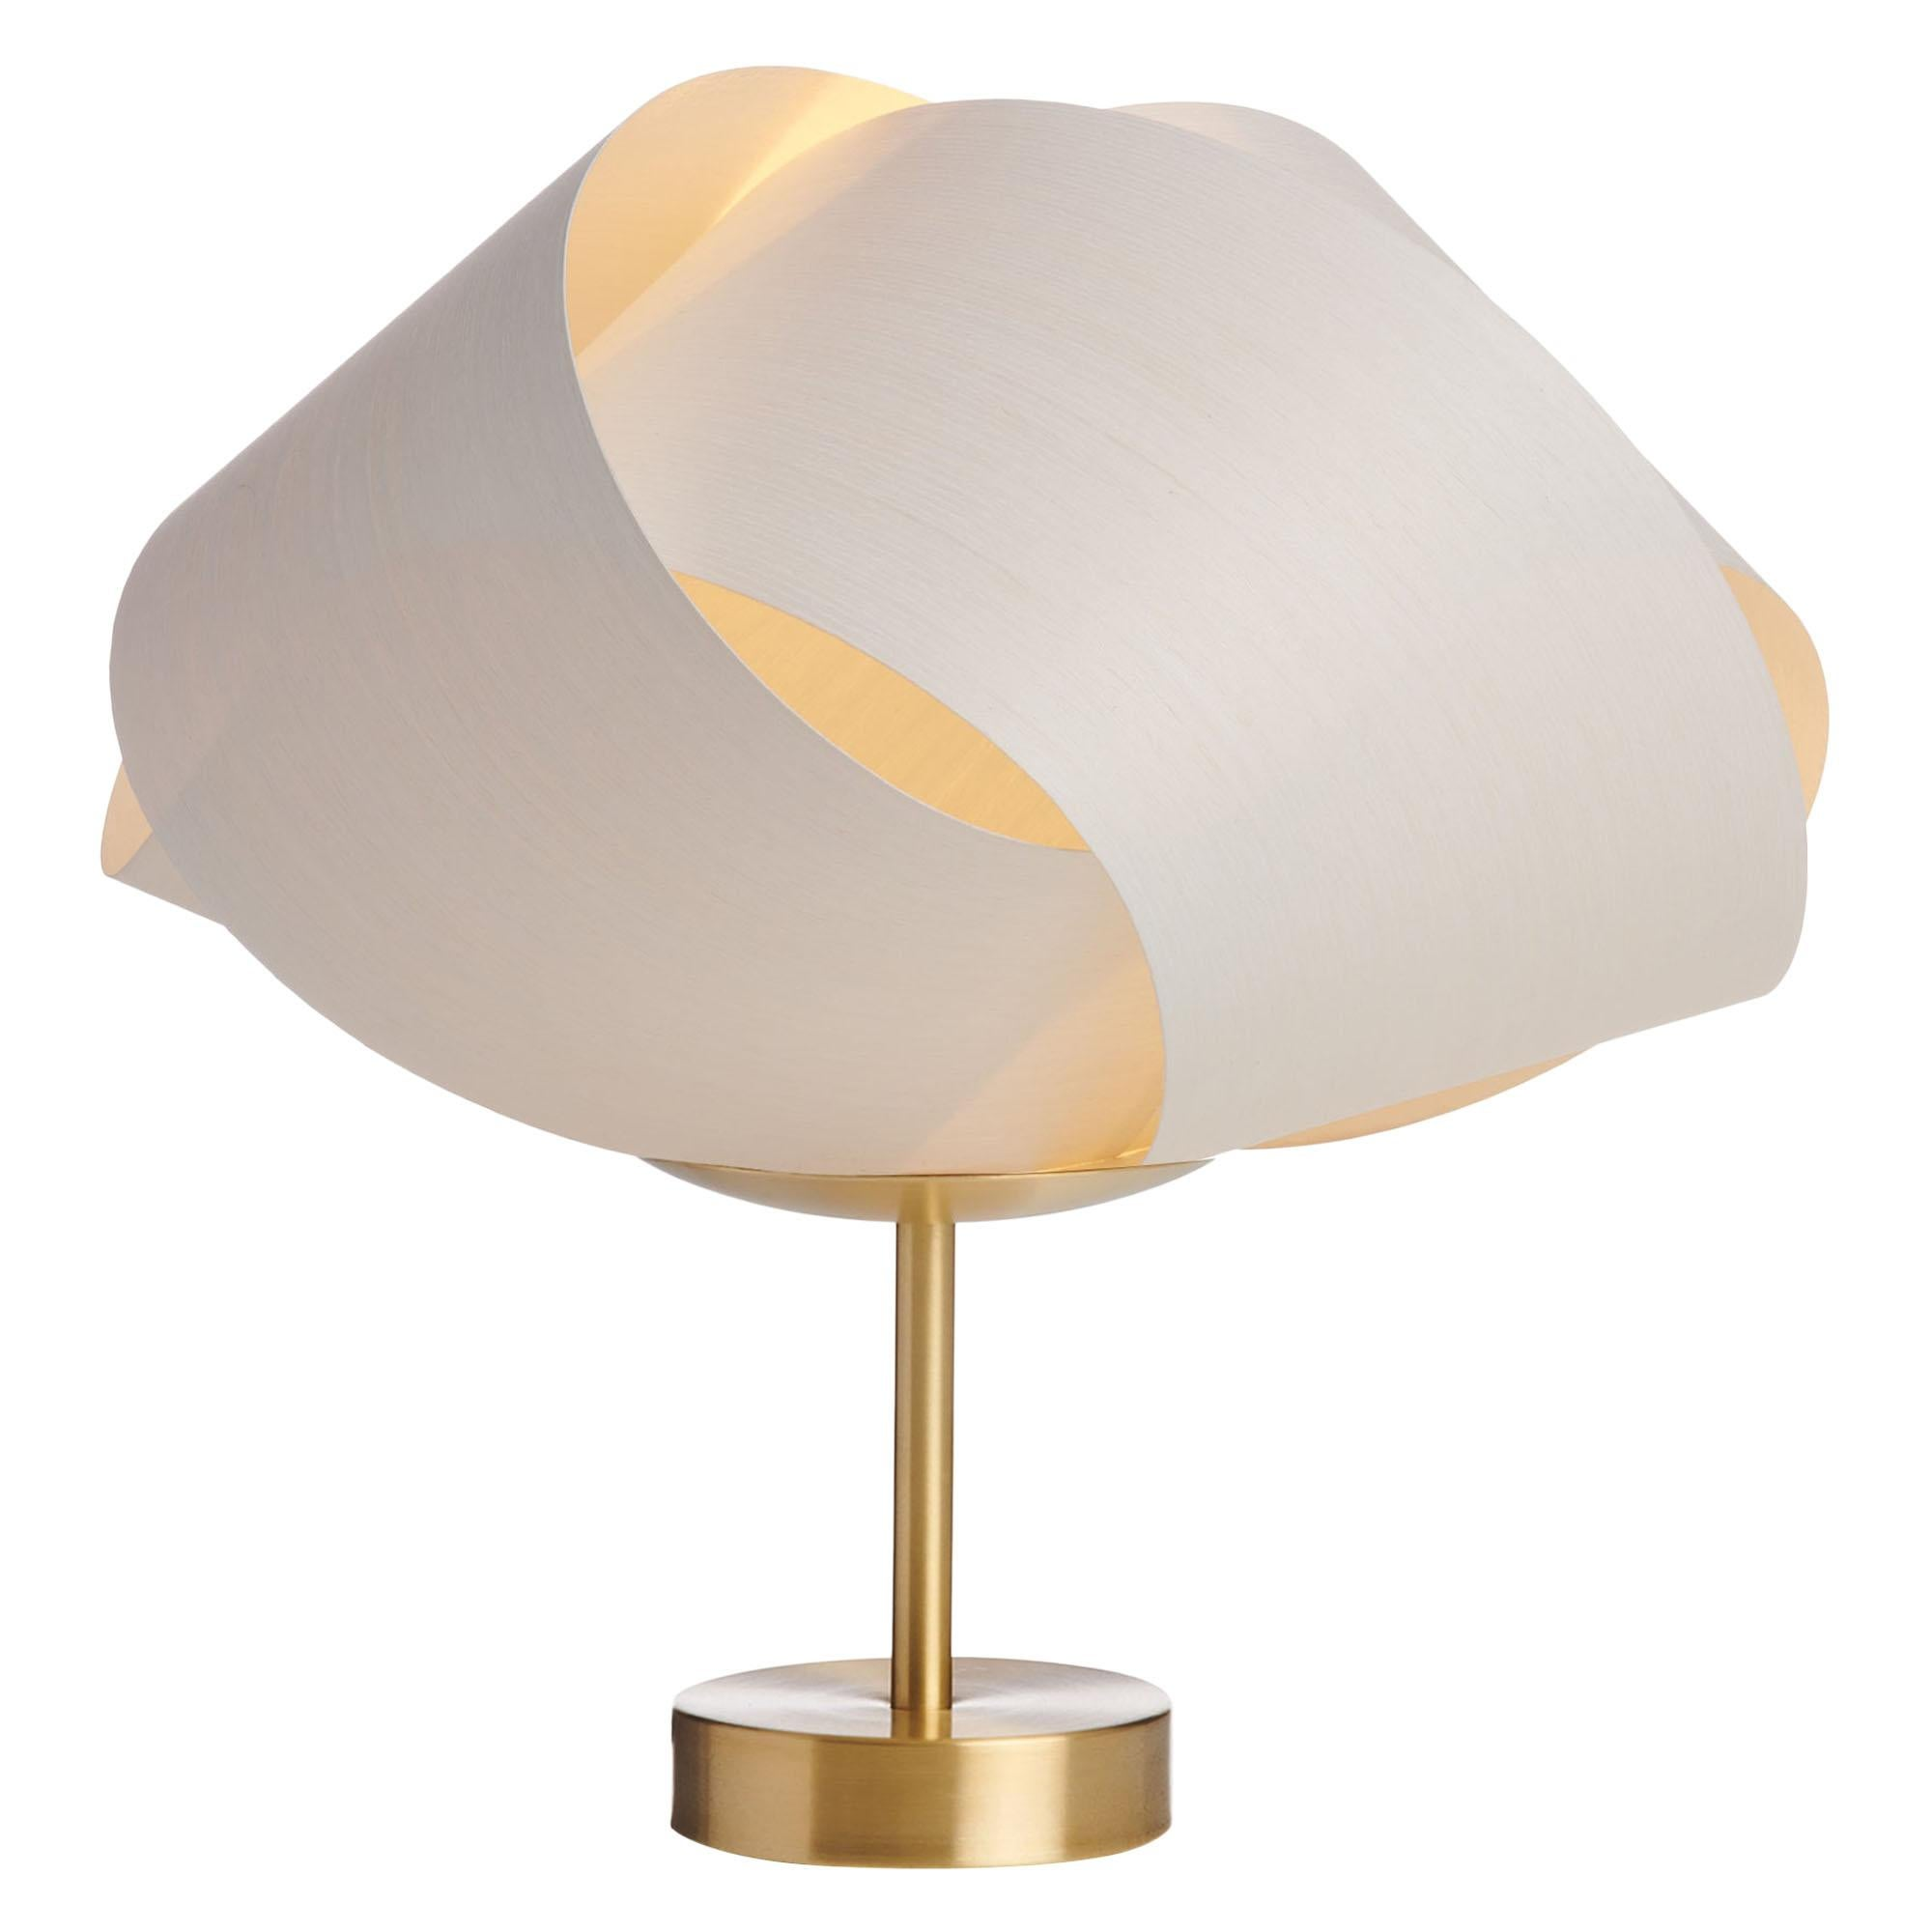 Scandinavian Modern wood veneer shade with brushed brass stand